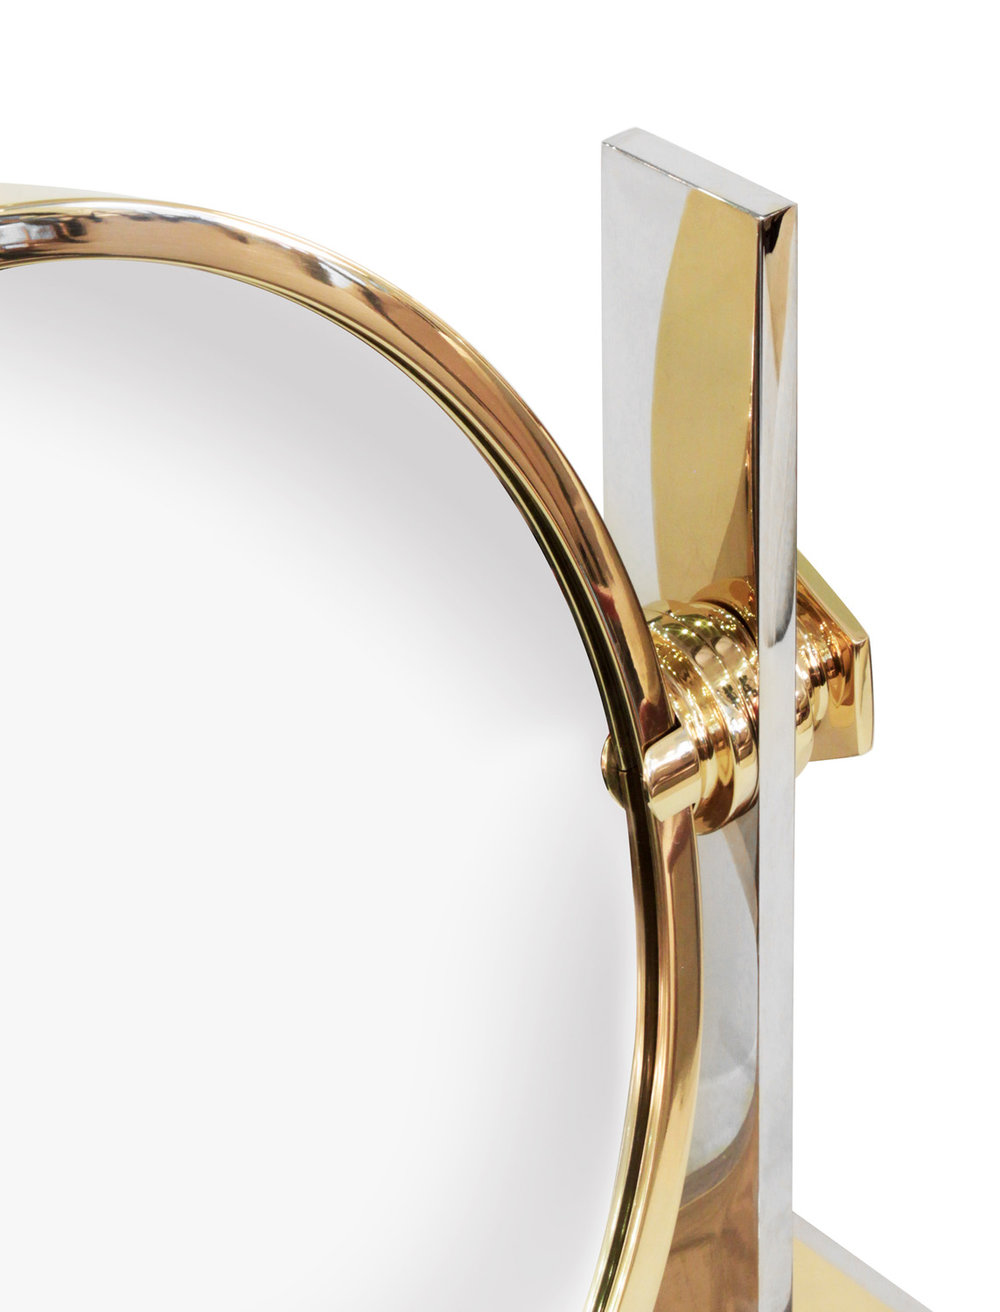 Springer 65 vanity steel+brass mirror171 detail4 hires.jpg